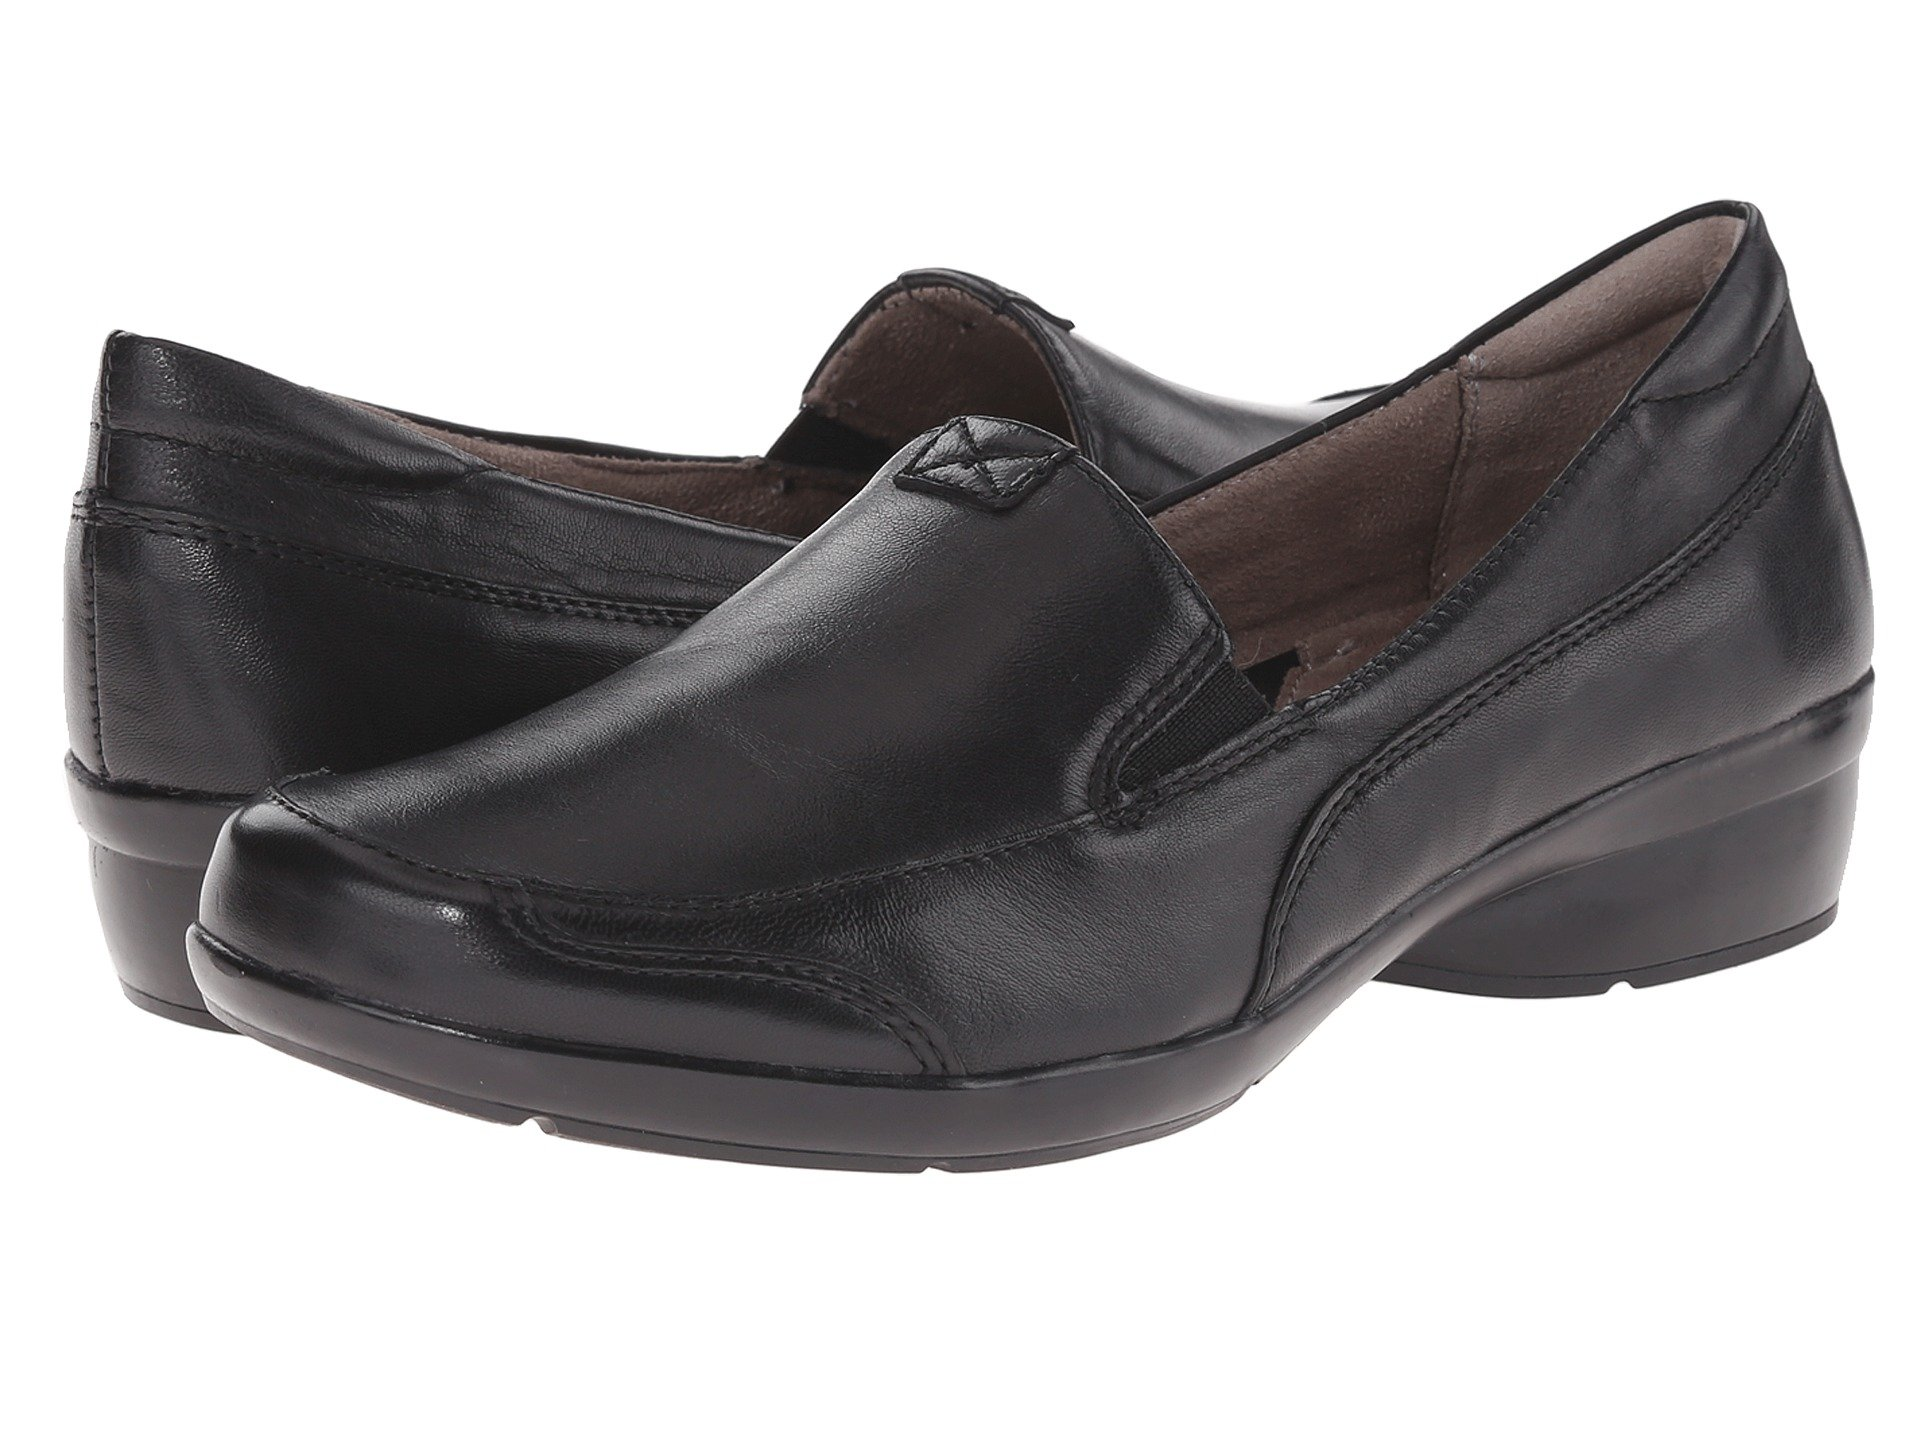 e561976237a Women s Naturalizer Loafers + FREE SHIPPING